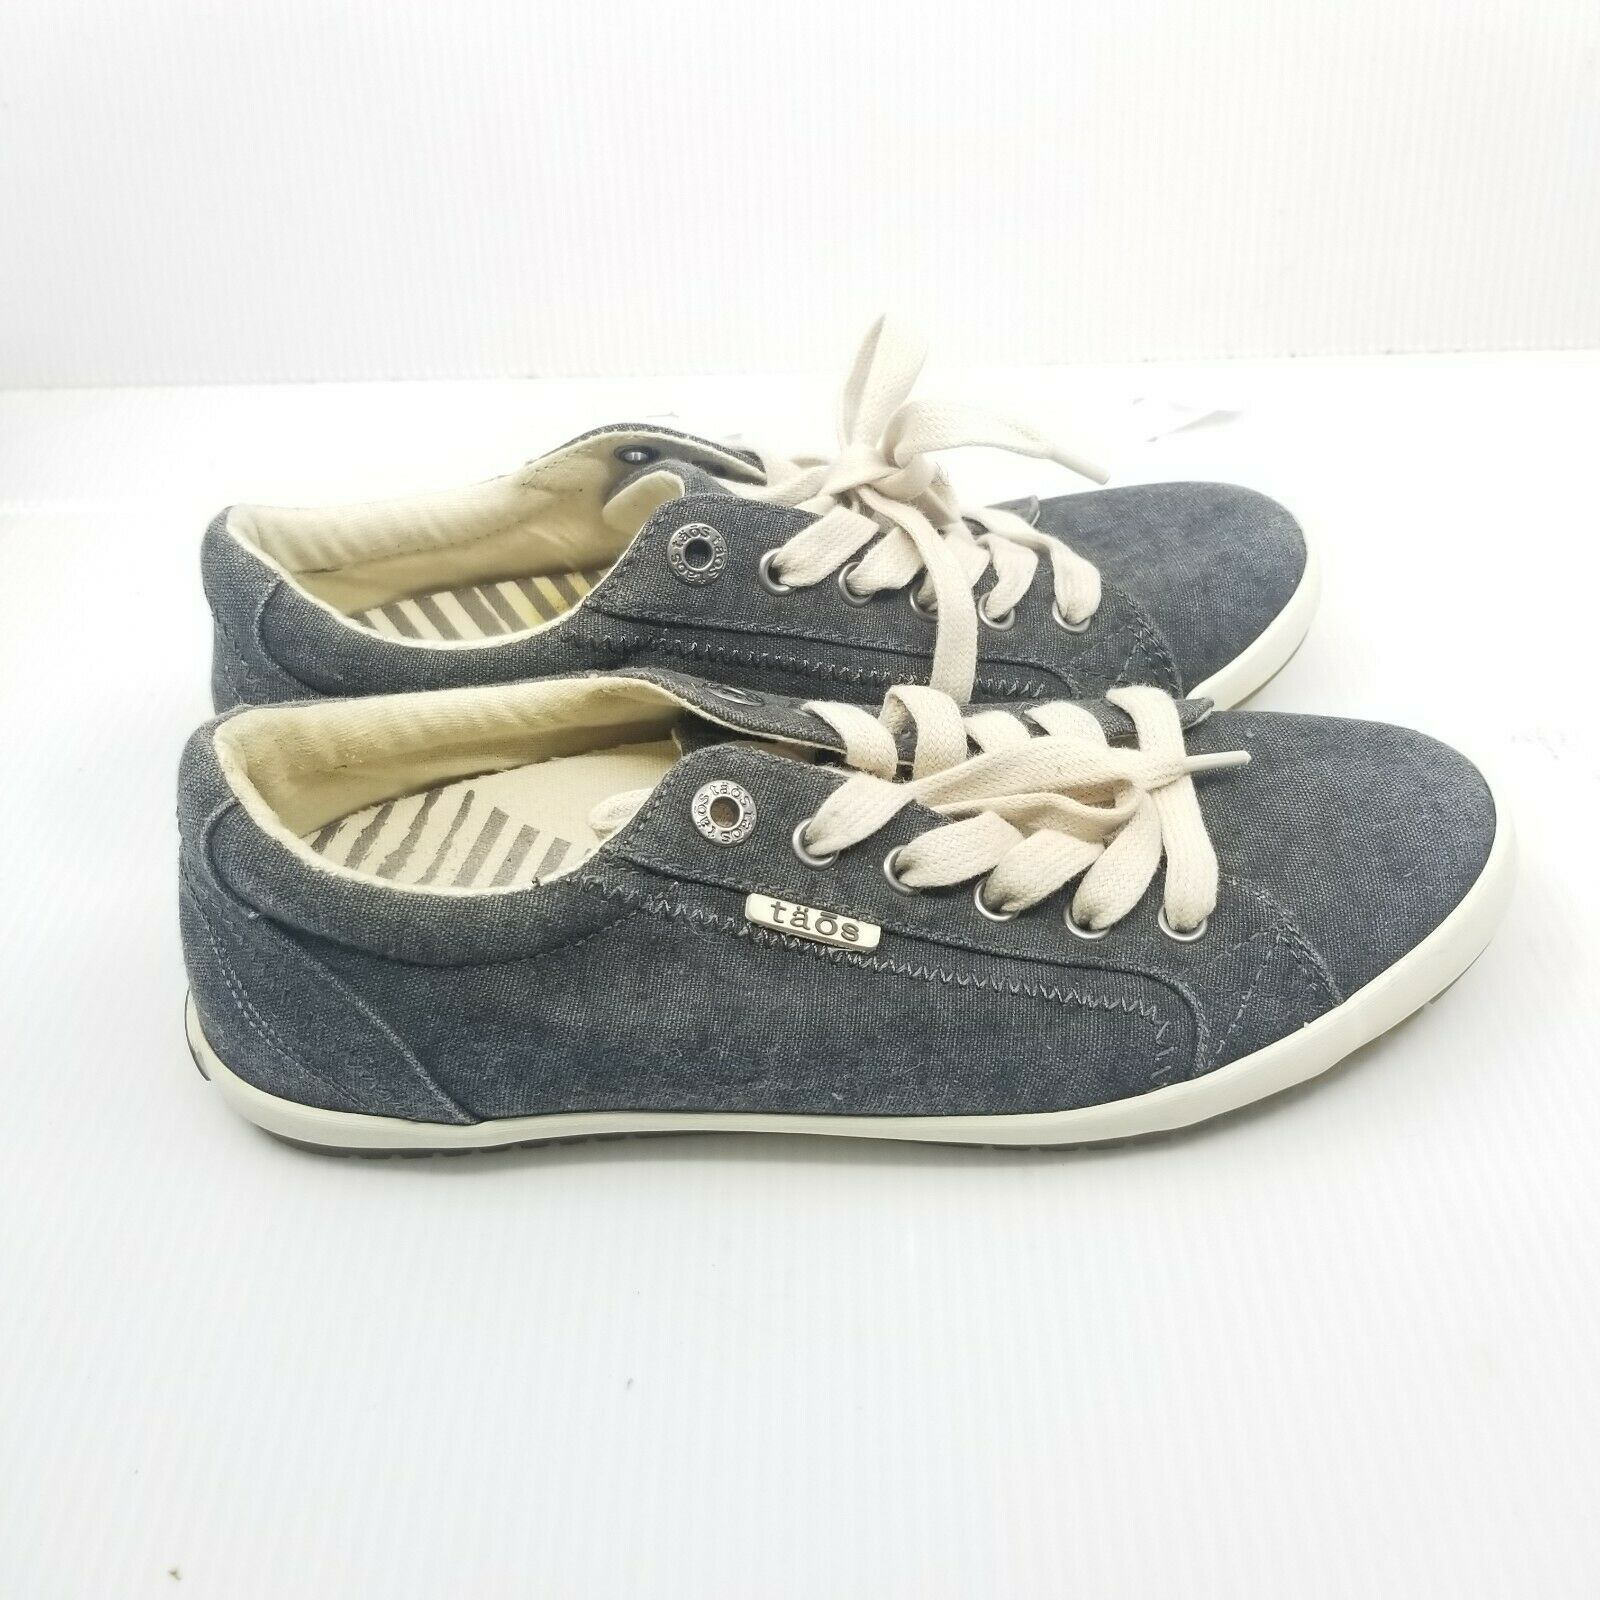 Taos Star Womens Gray Low Top Canvas Sneakers Size 8